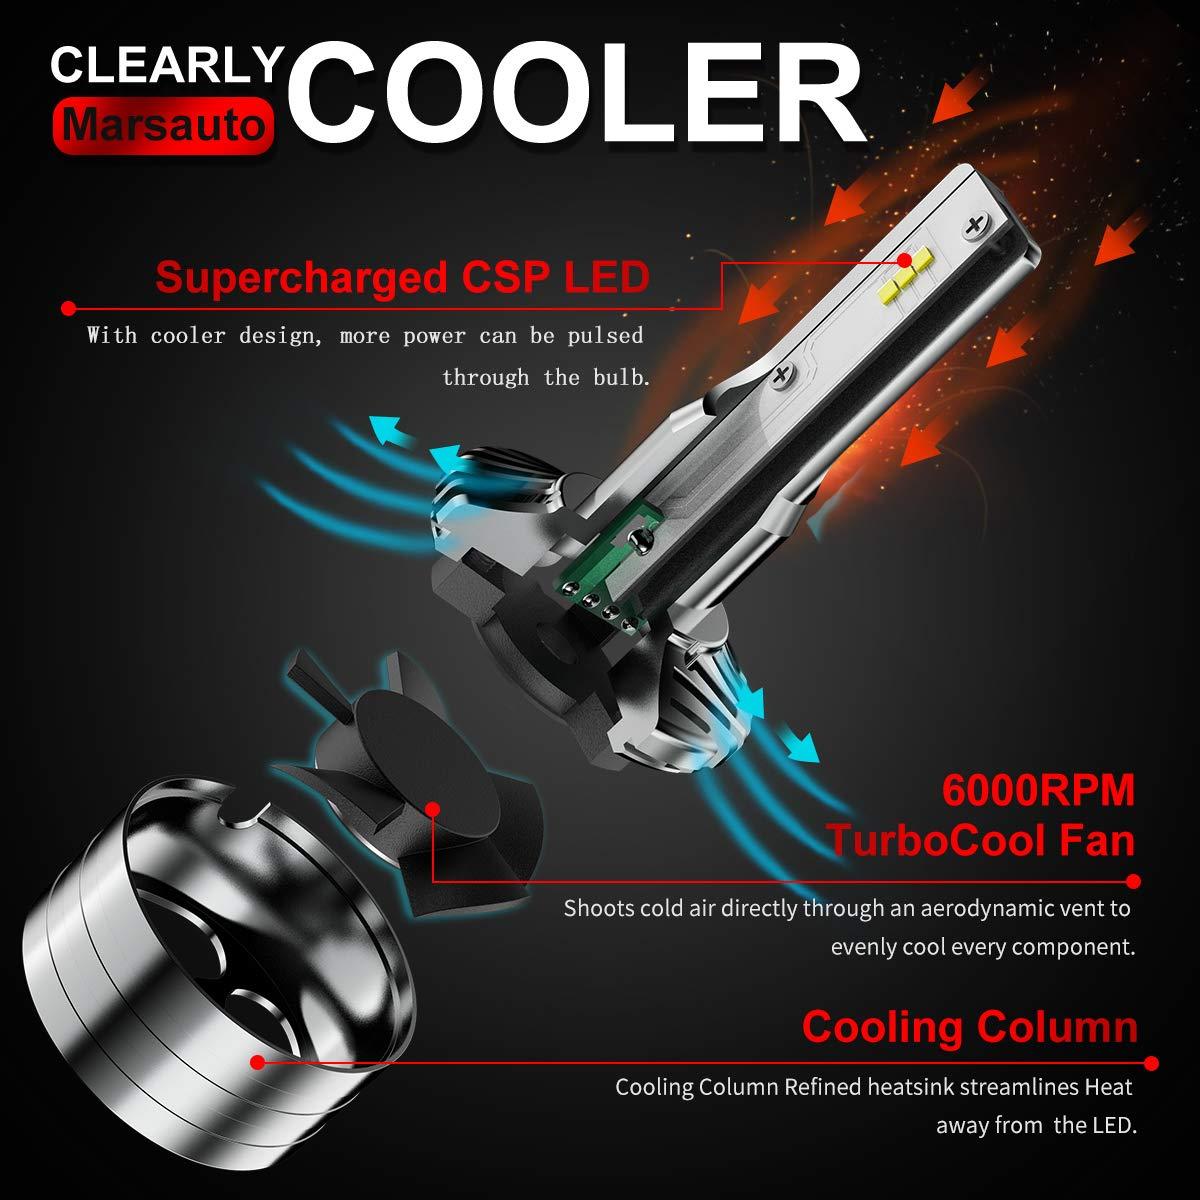 H11//H9 Led Headlight Bulbs Marsauto H8//H16 Super Bright Low Beam//Fog Light Bulb Conversion Kit with Fan CANbus-Ready IP67 CSP Chips 6000K Xenon White 2-Pack